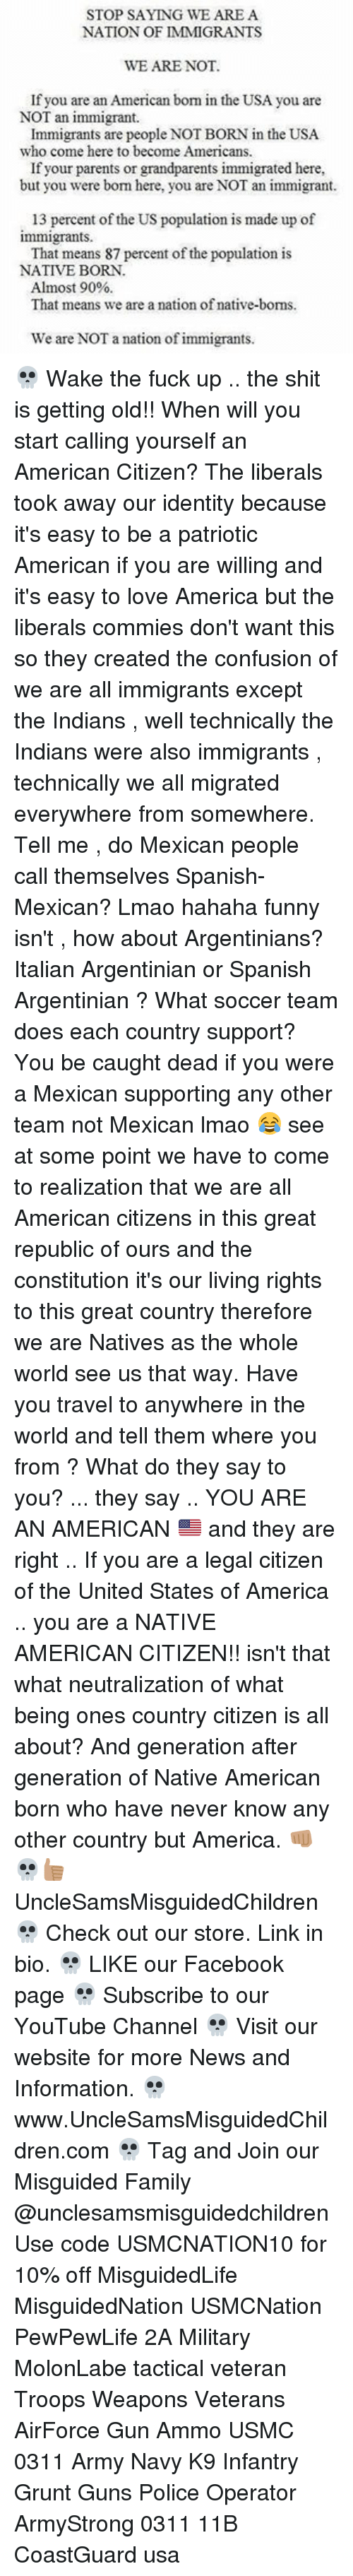 nativism: STOP SAYING WE ARE A  NATION OF IMMIGRANTS  WE ARE NOT.  If you are an American born in the USA you are  NOT an immigrant.  Immigrants are people NOTBORN in the USA.  who come here to become Americans.  If your parents or grandparents immigrated here,  but you were bom here, you are NOT an immigrant.  13 percent of the US population is made up of  immigrants.  That means 87 percent of the population is  NATIVE BORN.  Almost 90%  That means we are a nation of native-boms.  We are NOT a nation of immigrants. 💀 Wake the fuck up .. the shit is getting old!! When will you start calling yourself an American Citizen? The liberals took away our identity because it's easy to be a patriotic American if you are willing and it's easy to love America but the liberals commies don't want this so they created the confusion of we are all immigrants except the Indians , well technically the Indians were also immigrants , technically we all migrated everywhere from somewhere. Tell me , do Mexican people call themselves Spanish-Mexican? Lmao hahaha funny isn't , how about Argentinians? Italian Argentinian or Spanish Argentinian ? What soccer team does each country support? You be caught dead if you were a Mexican supporting any other team not Mexican lmao 😂 see at some point we have to come to realization that we are all American citizens in this great republic of ours and the constitution it's our living rights to this great country therefore we are Natives as the whole world see us that way. Have you travel to anywhere in the world and tell them where you from ? What do they say to you? ... they say .. YOU ARE AN AMERICAN 🇺🇸 and they are right .. If you are a legal citizen of the United States of America .. you are a NATIVE AMERICAN CITIZEN!! isn't that what neutralization of what being ones country citizen is all about? And generation after generation of Native American born who have never know any other country but America. 👊🏽💀👍🏽 UncleSamsMisguidedChildren 💀 Check out our store. Link in bio. 💀 LIKE our Facebook page 💀 Subscribe to our YouTube Channel 💀 Visit our website for more News and Information. 💀 www.UncleSamsMisguidedChildren.com 💀 Tag and Join our Misguided Family @unclesamsmisguidedchildren Use code USMCNATION10 for 10% off MisguidedLife MisguidedNation USMCNation PewPewLife 2A Military MolonLabe tactical veteran Troops Weapons Veterans AirForce Gun Ammo USMC 0311 Army Navy K9 Infantry Grunt Guns Police Operator ArmyStrong 0311 11B CoastGuard usa